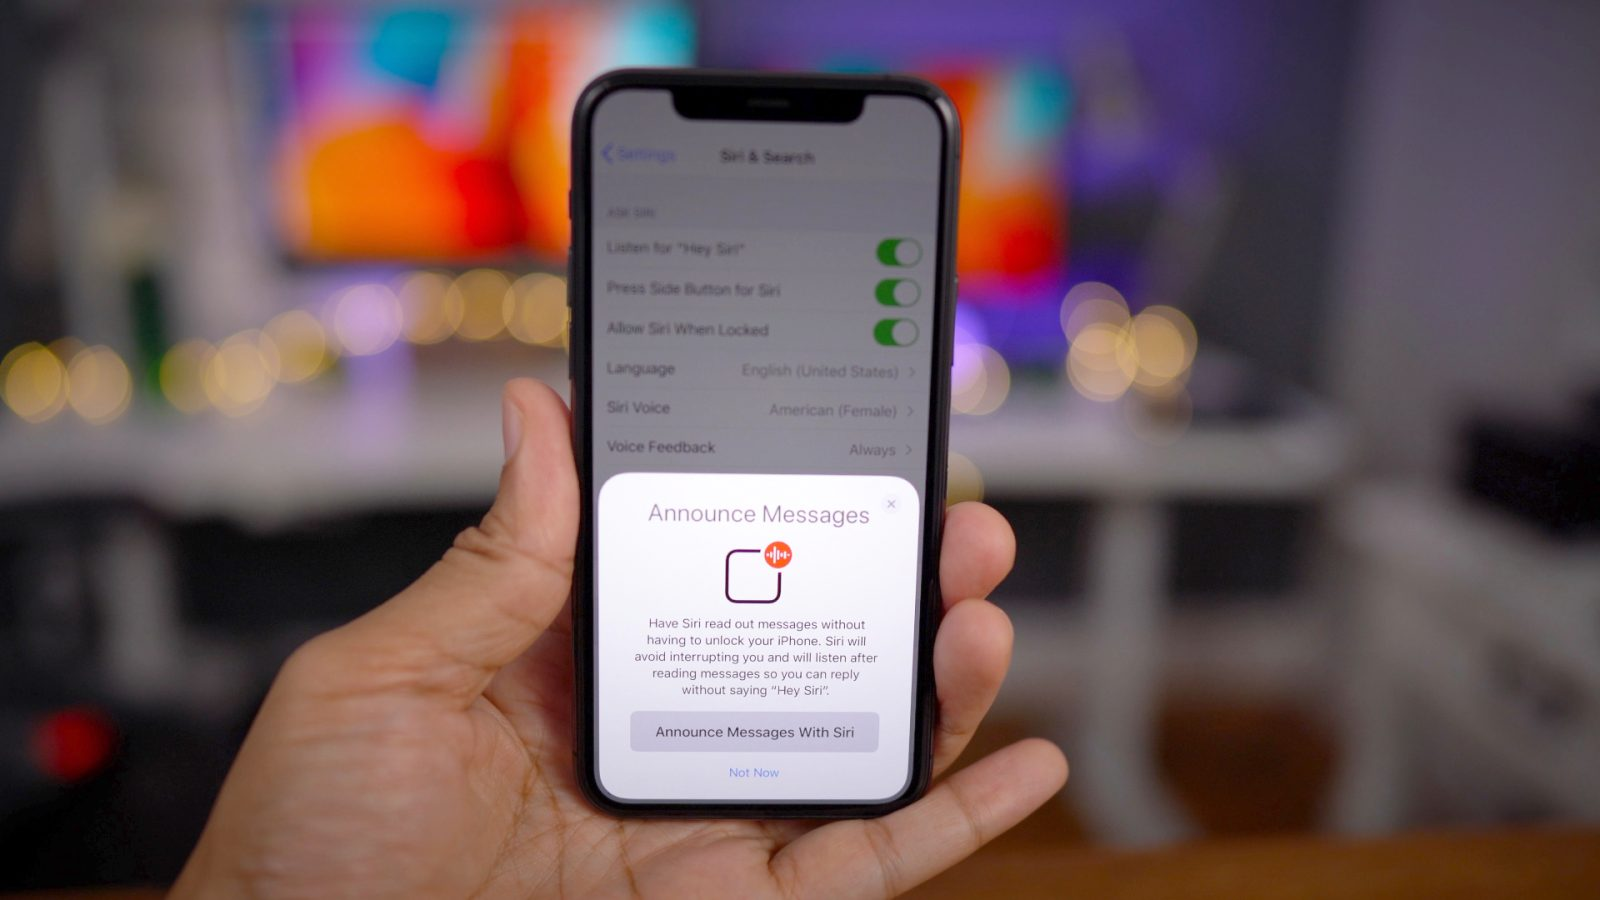 Apple releasing second developer beta of iOS 13.2 today [U: Now available]